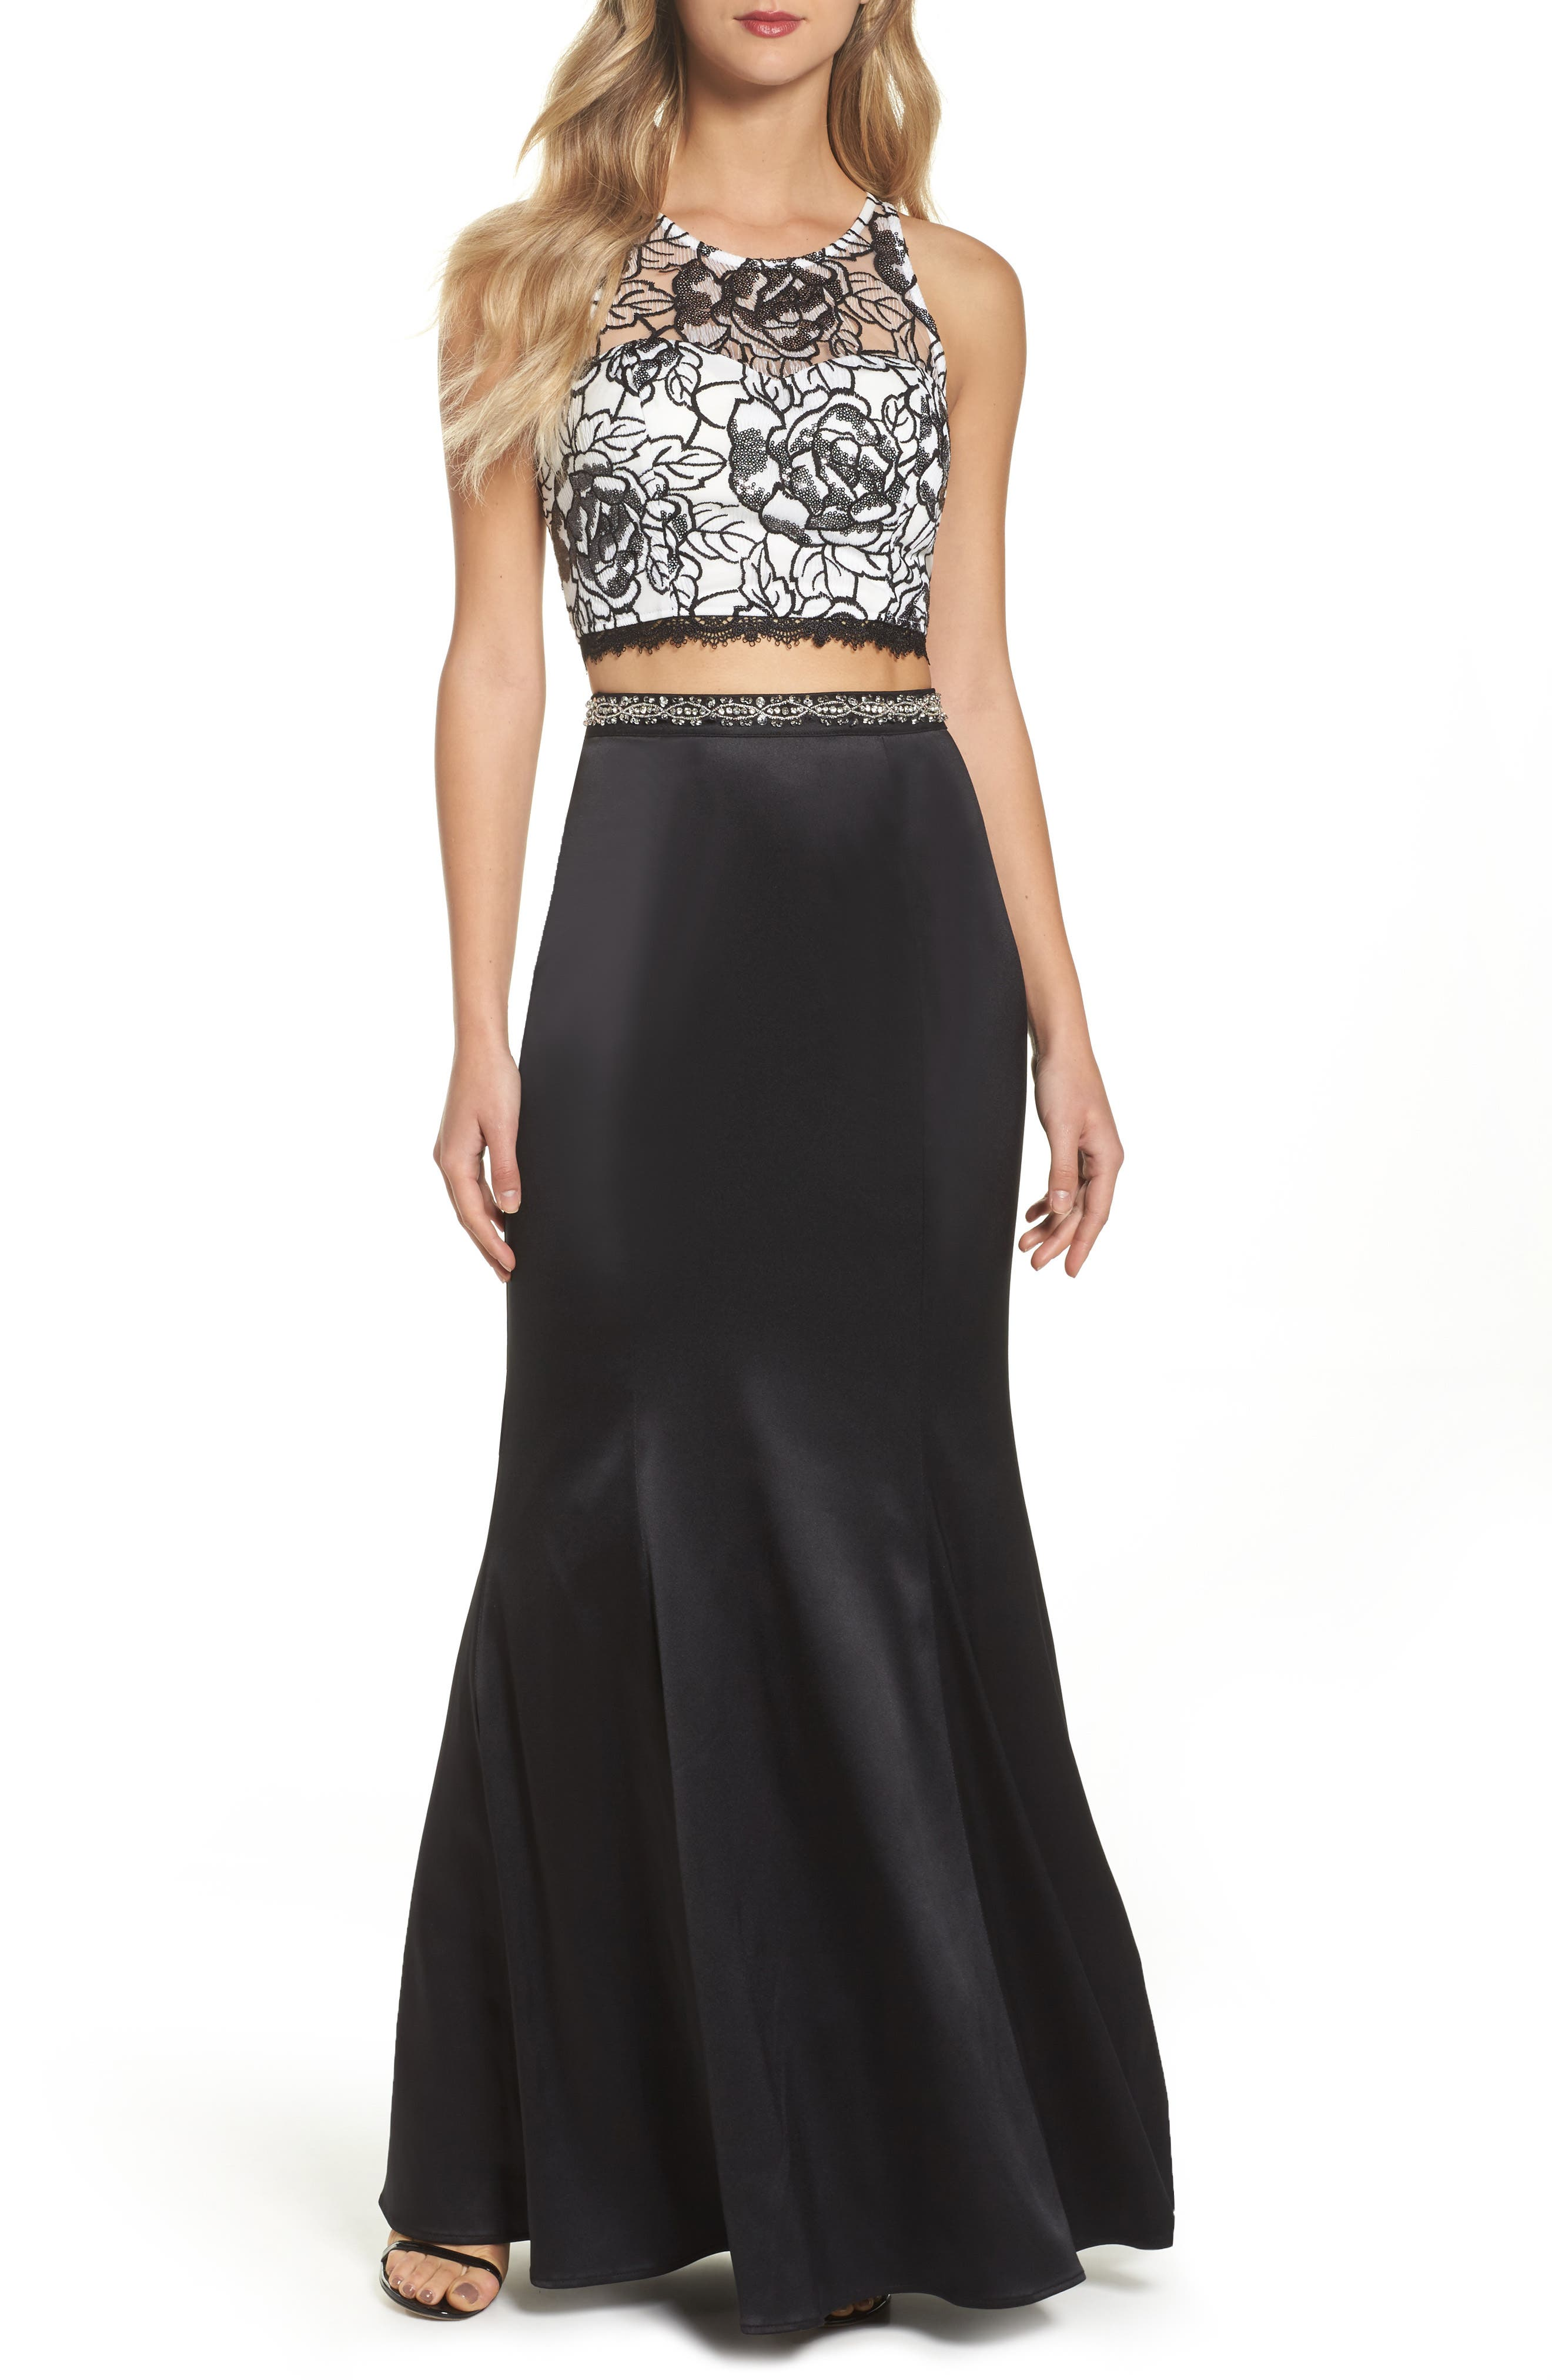 Sequined Lace Two-Piece Gown,                             Main thumbnail 1, color,                             Black/ Ivory